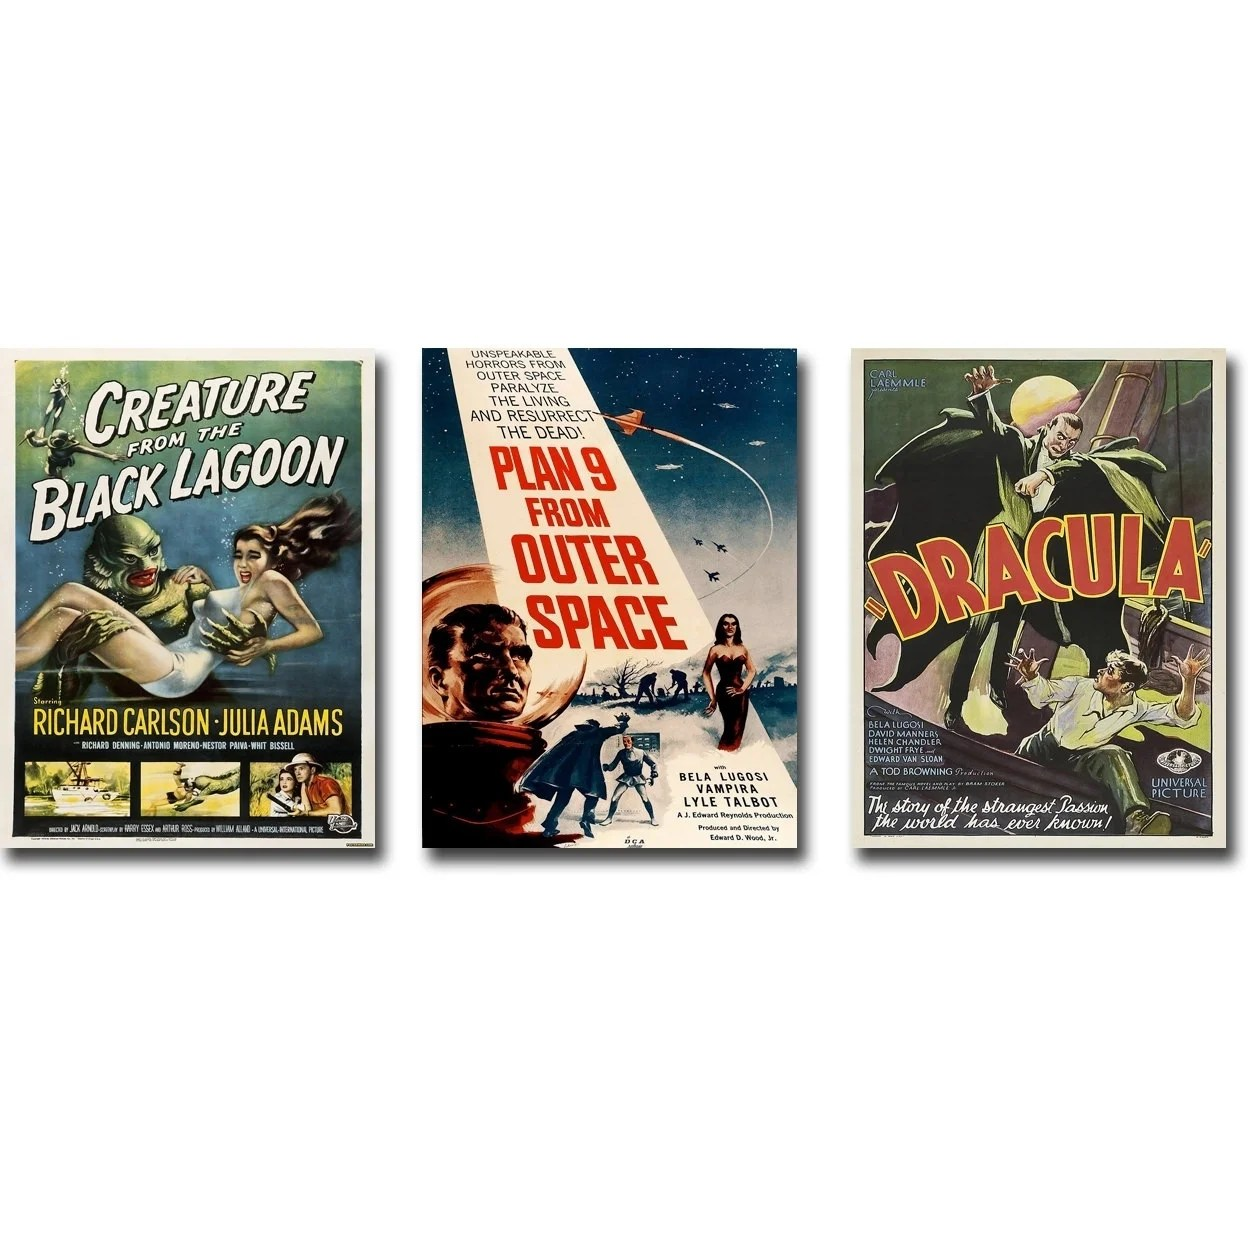 Canvas Giclee Vintage Horror Movie Poster 3 Piece Gallery Wrapped Canvas Giclee Art Collection Set